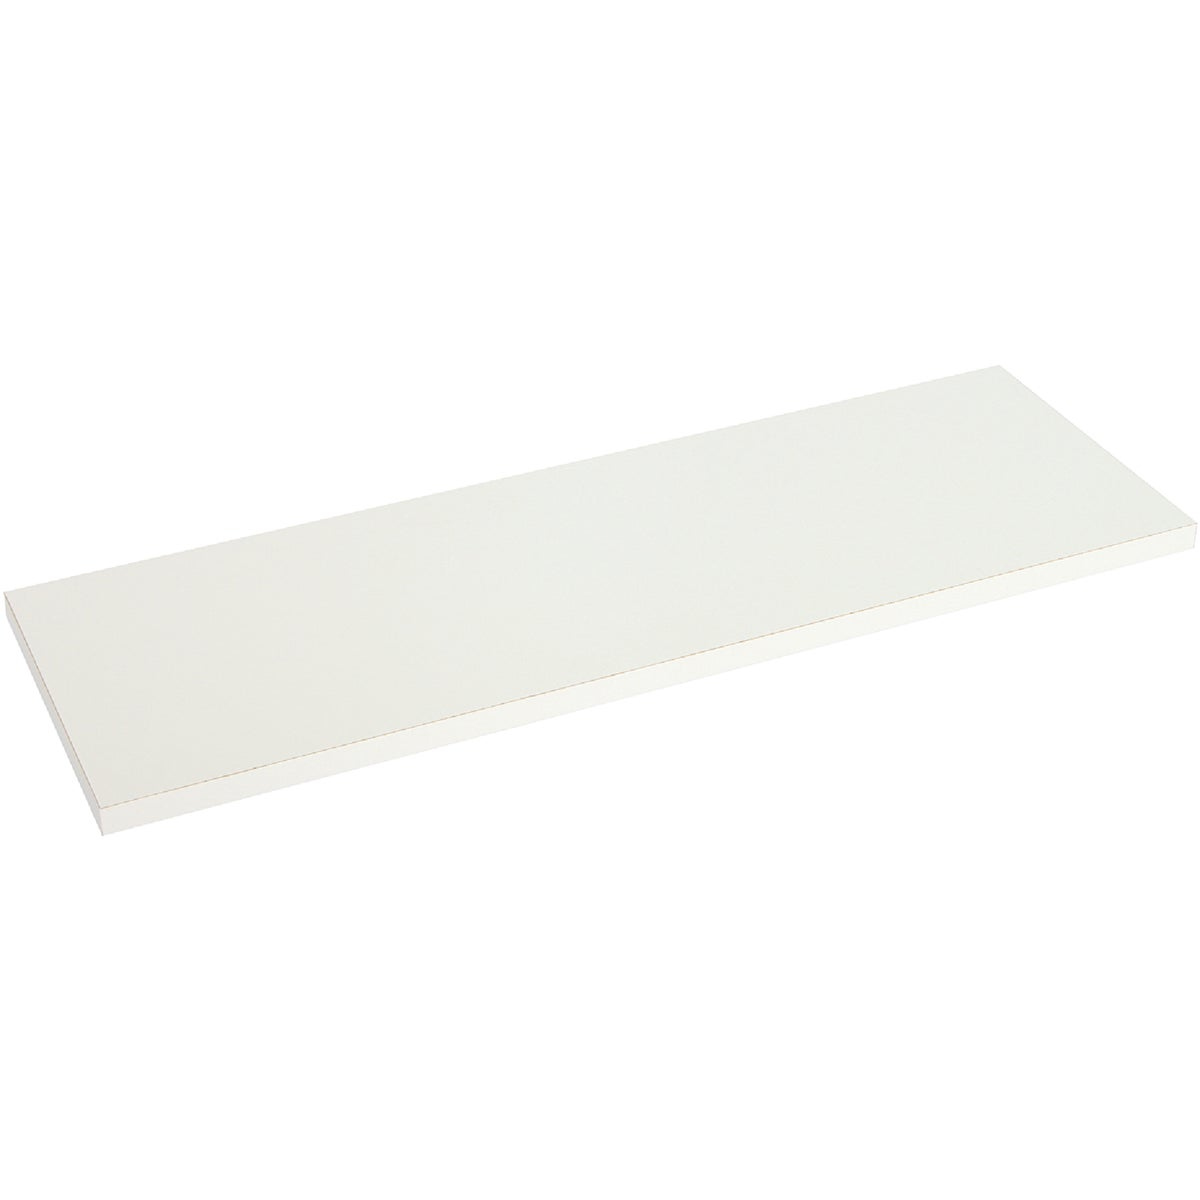 8X36 WHITE SHELF - 1980WH8X36 by Knape & Vogt Mfg Co